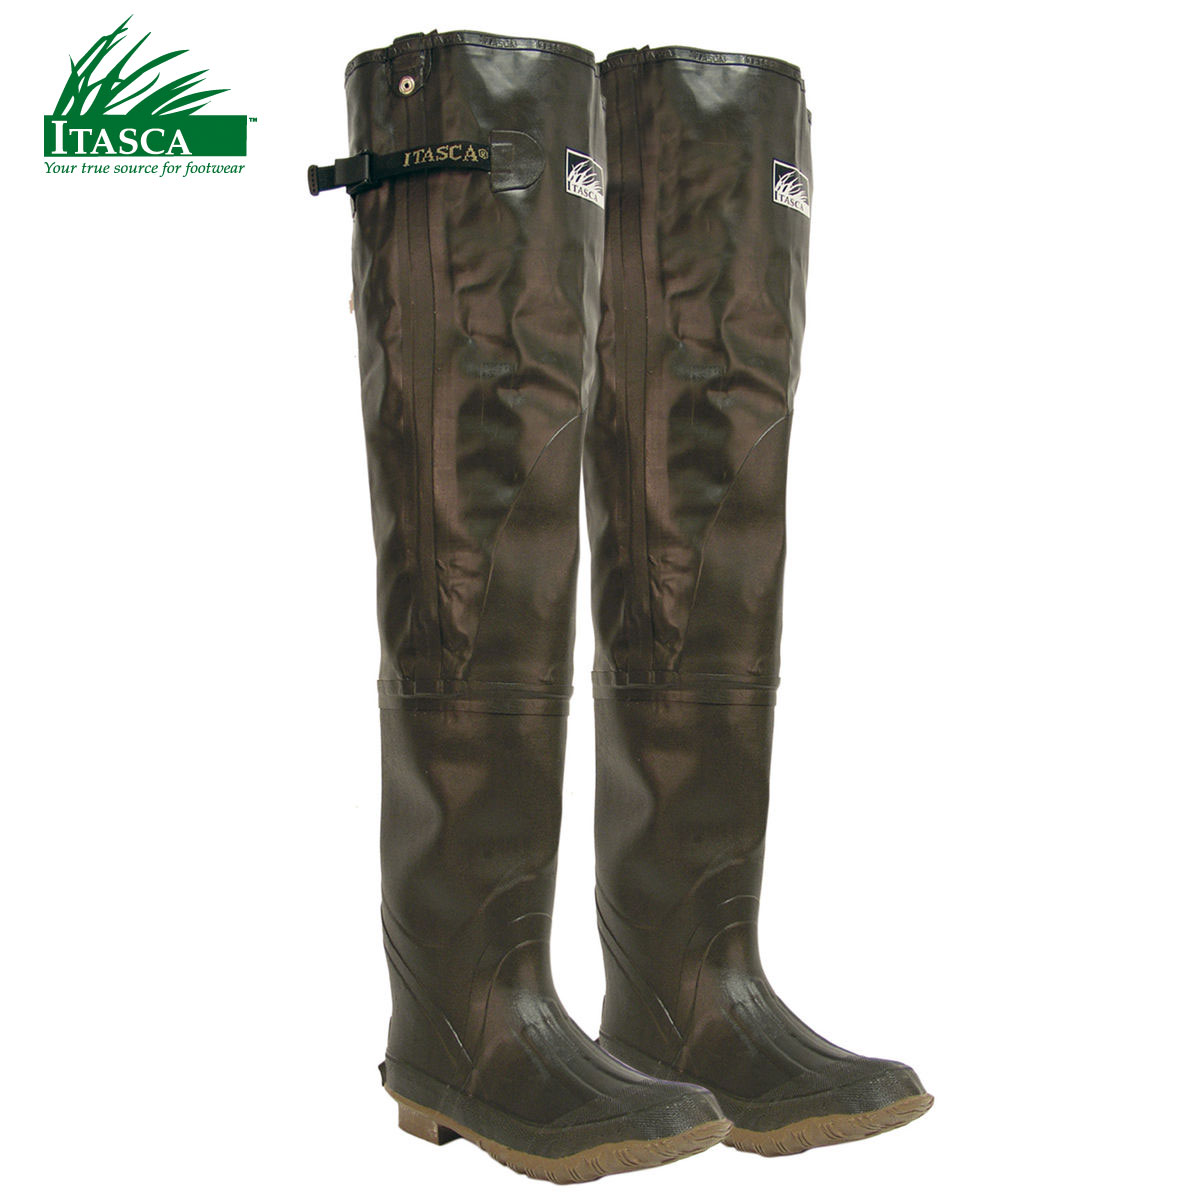 Itasca Rubber Men's Hip Waders (9)- Brown